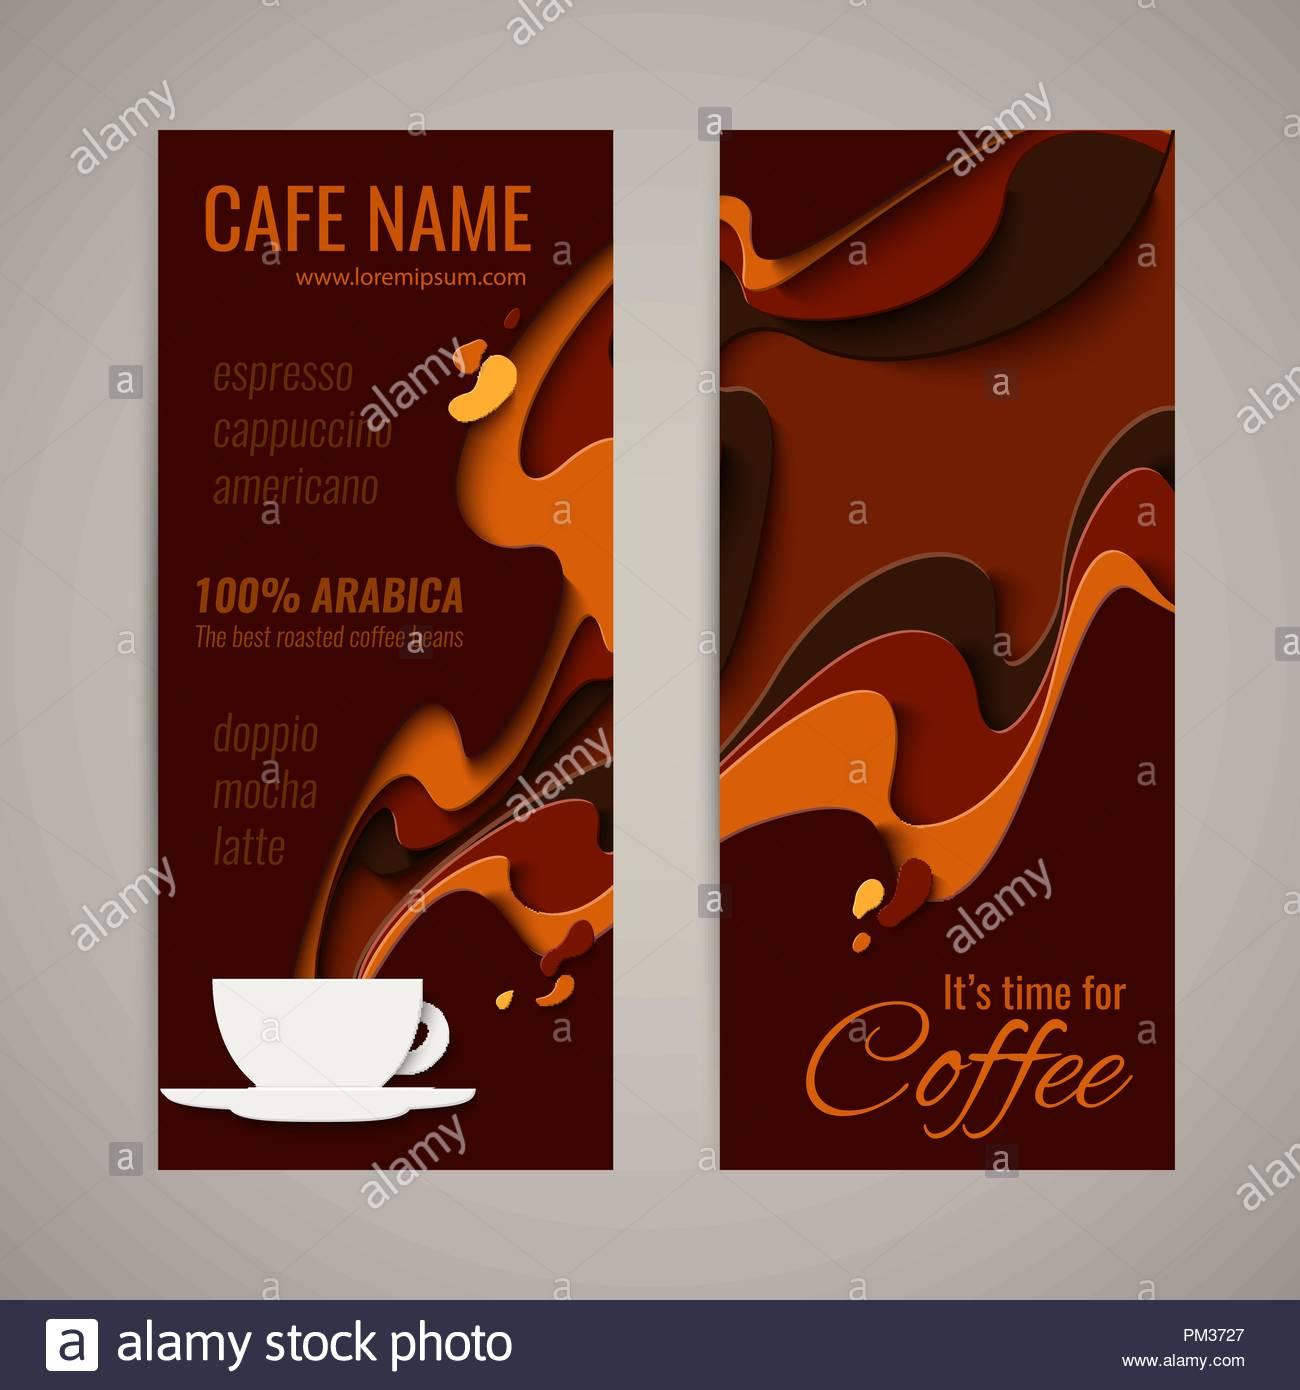 Coffee Menu Design Paper Cut Style Poster For Coffee Shop Cafe Or